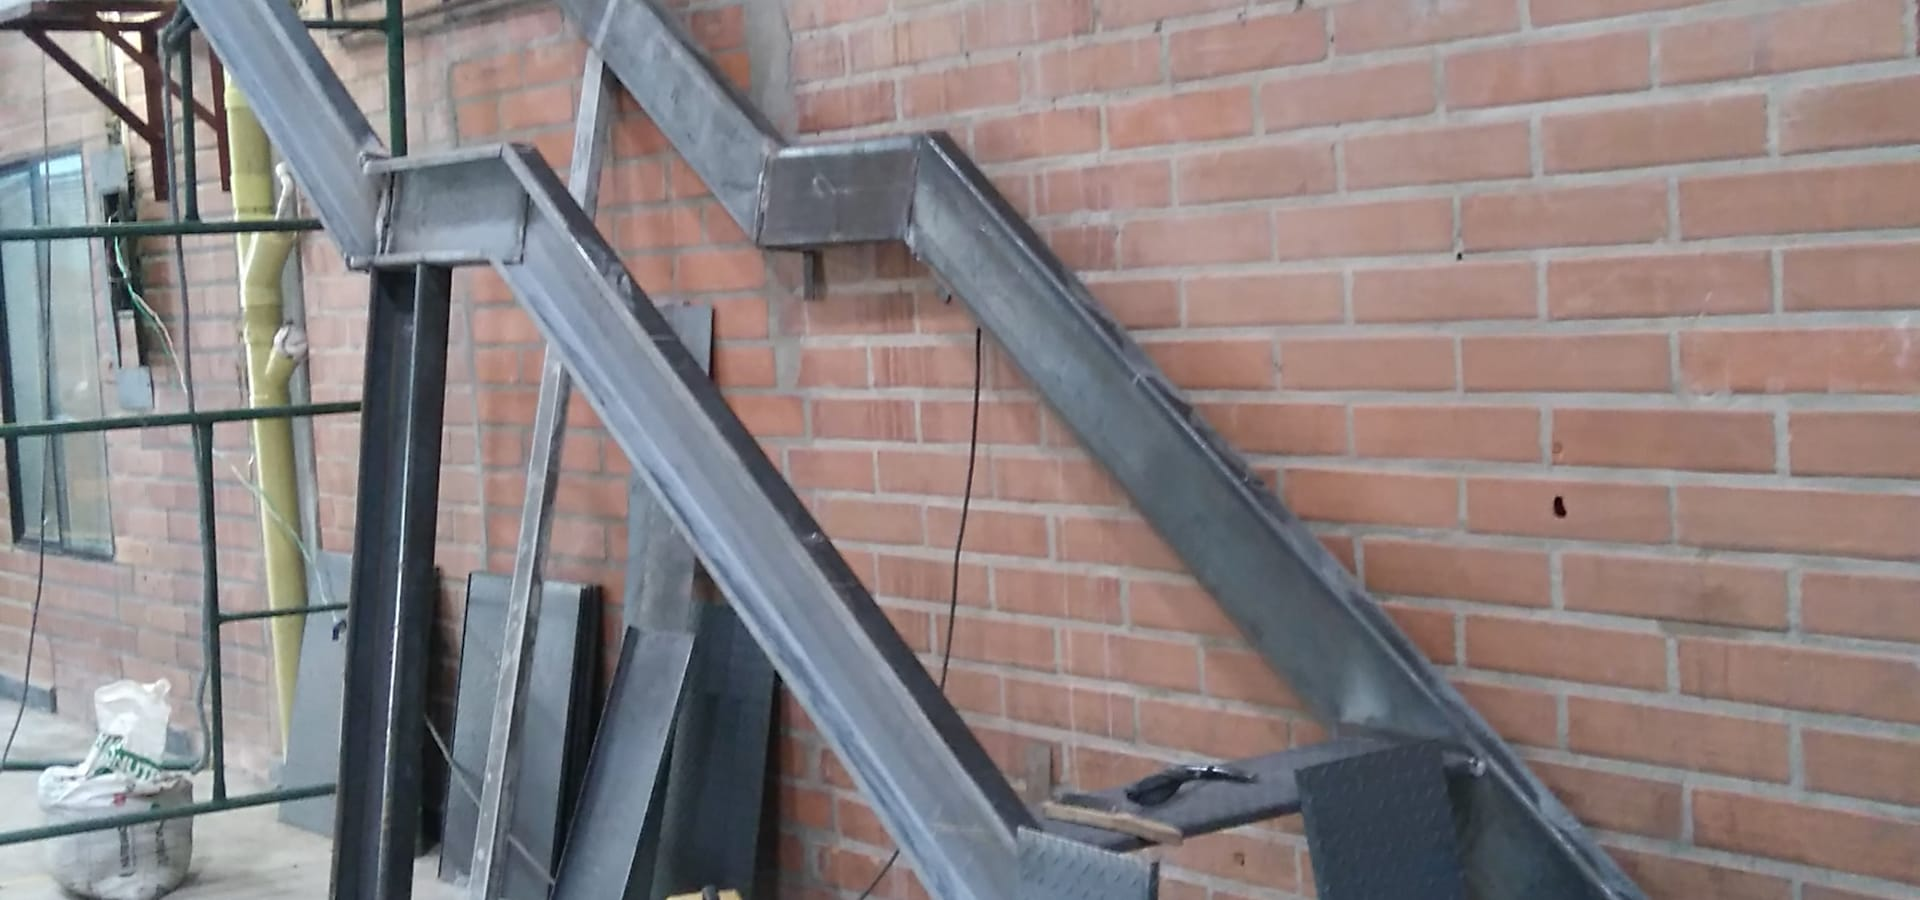 Escalera metalica va de escape a travs de escalera for Como construir una escalera metalica